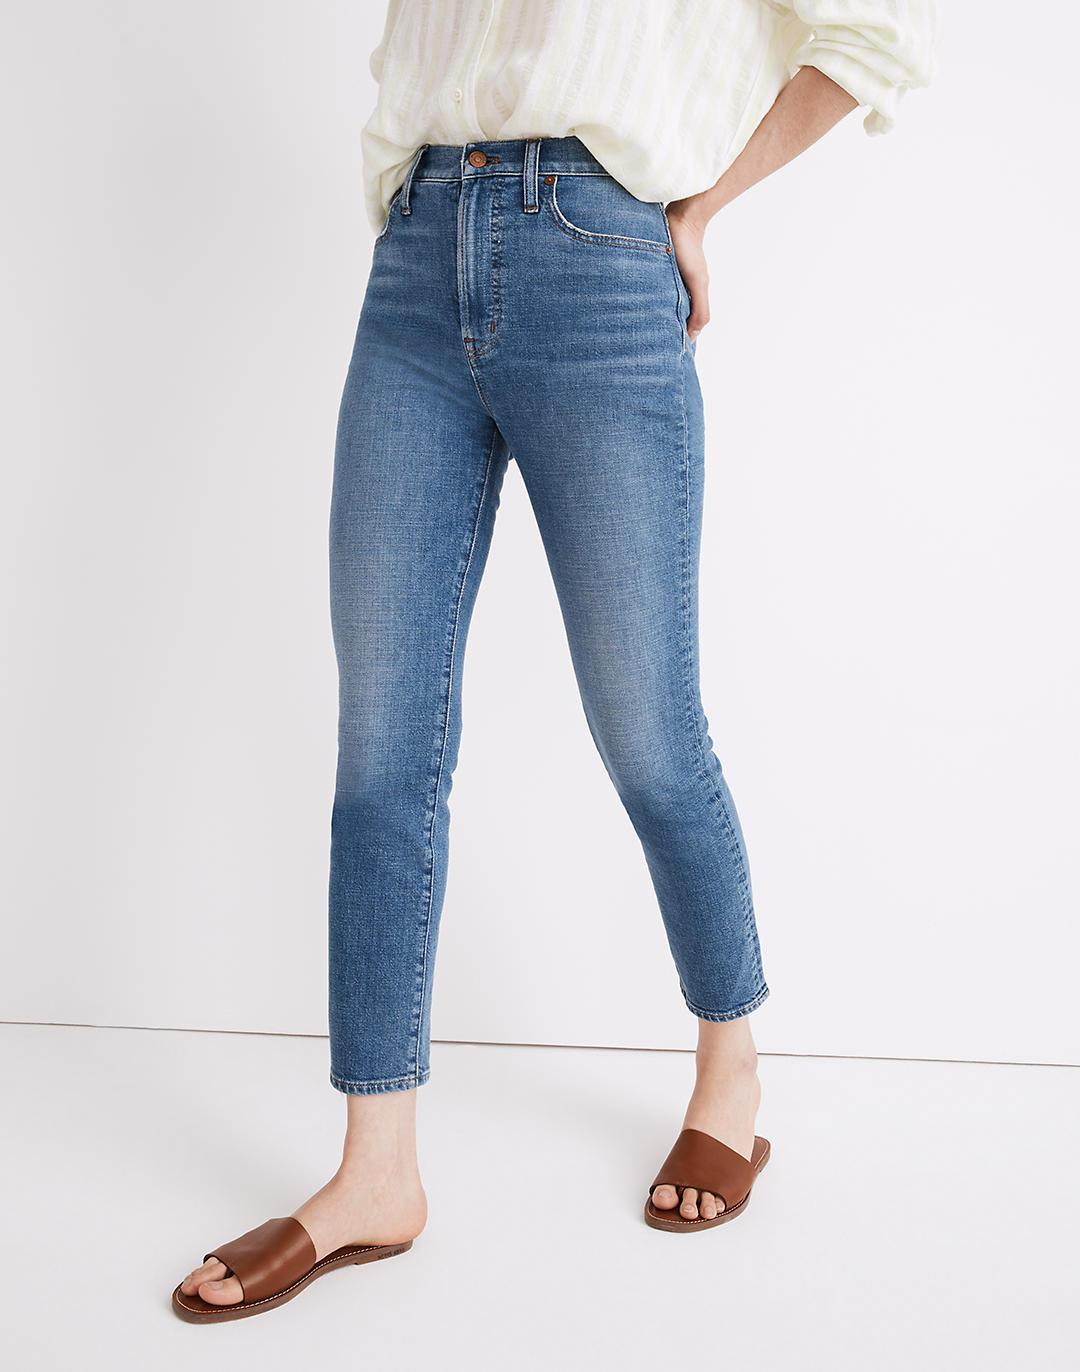 The Perfect Vintage Crop Jean in Sandford Wash: Summerweight Edition 2